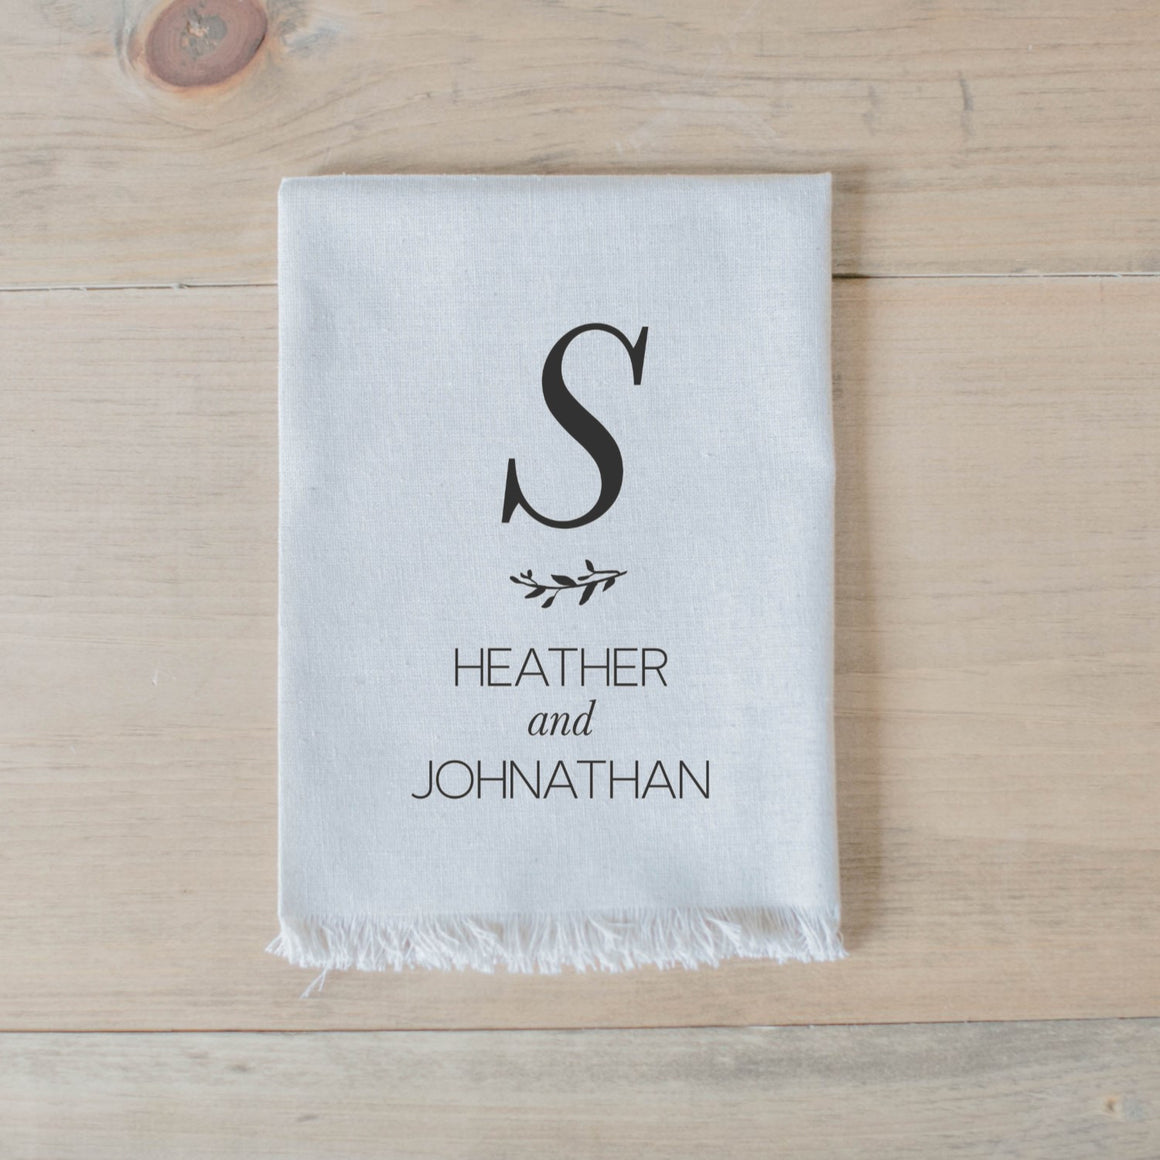 Handmade 100% linen personalized last initial and names napkin